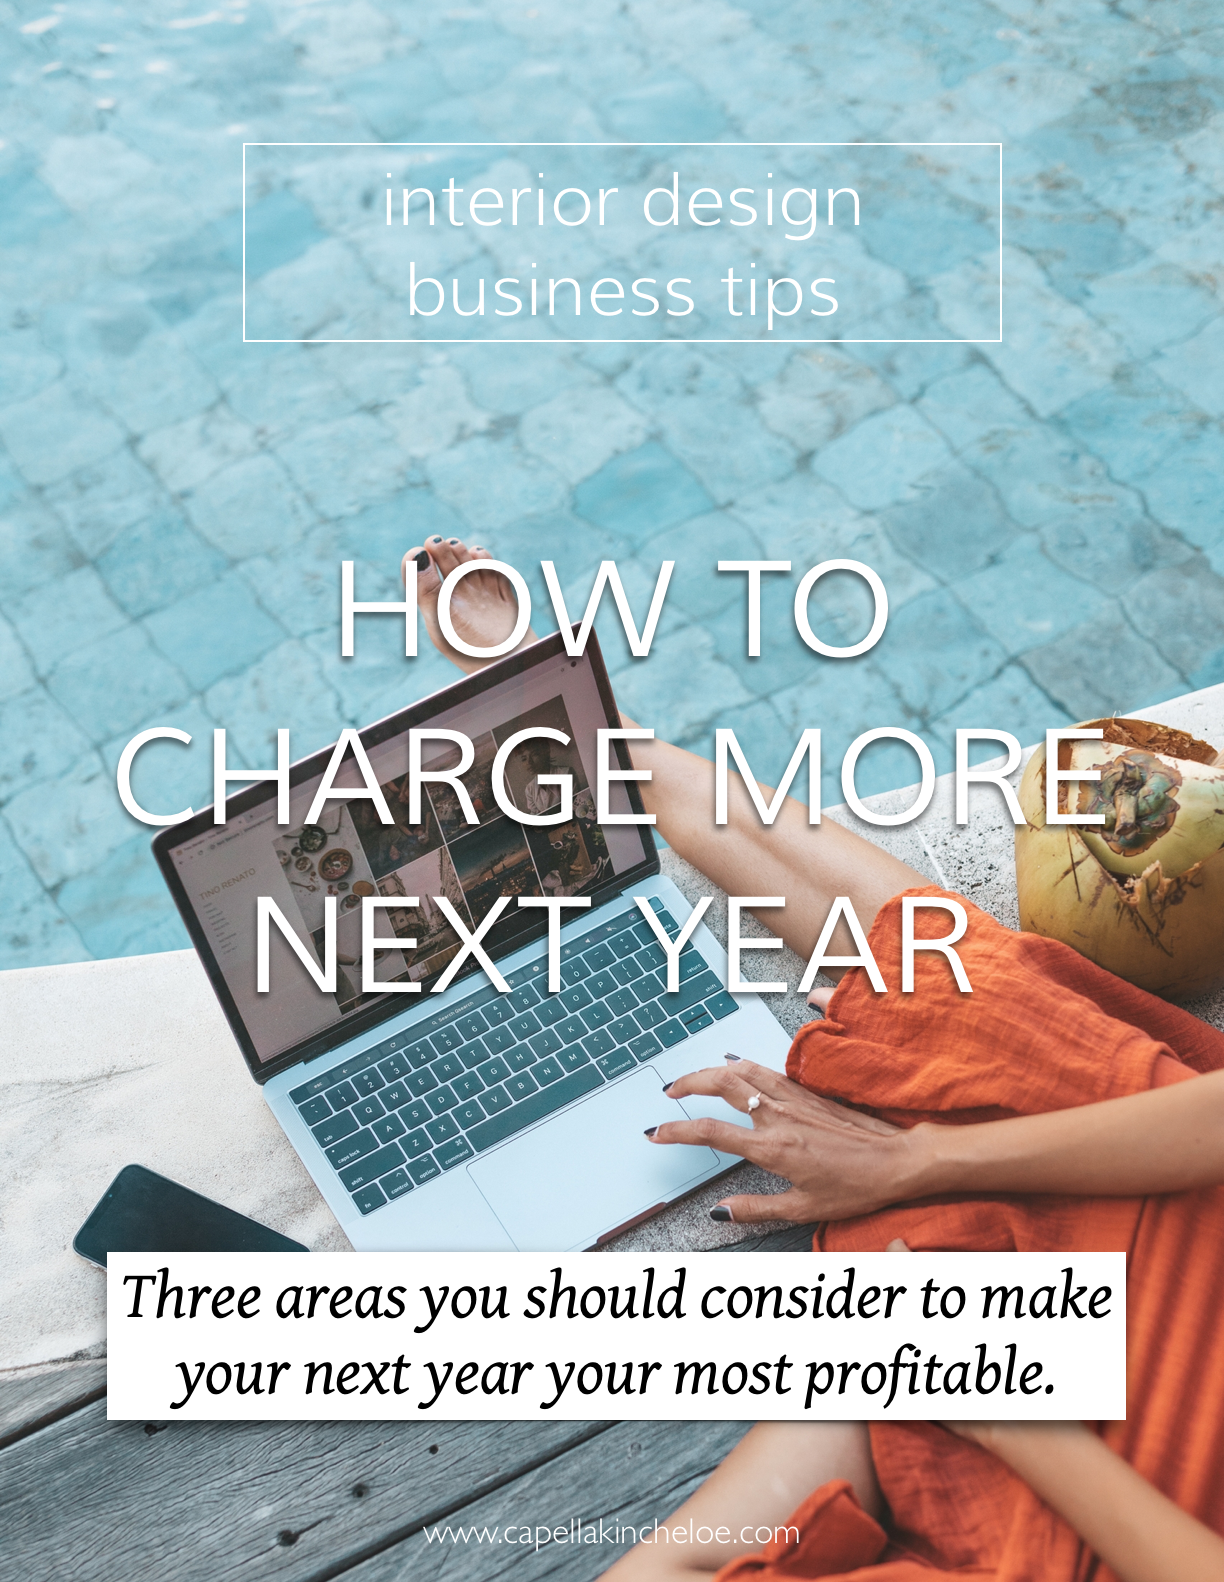 How to Charge More Next Year #interiorDesignBusiness #interiorDESIGNCEO #INTERIORDESIGNFEES #MAKEMONEY #PROFITABILITY